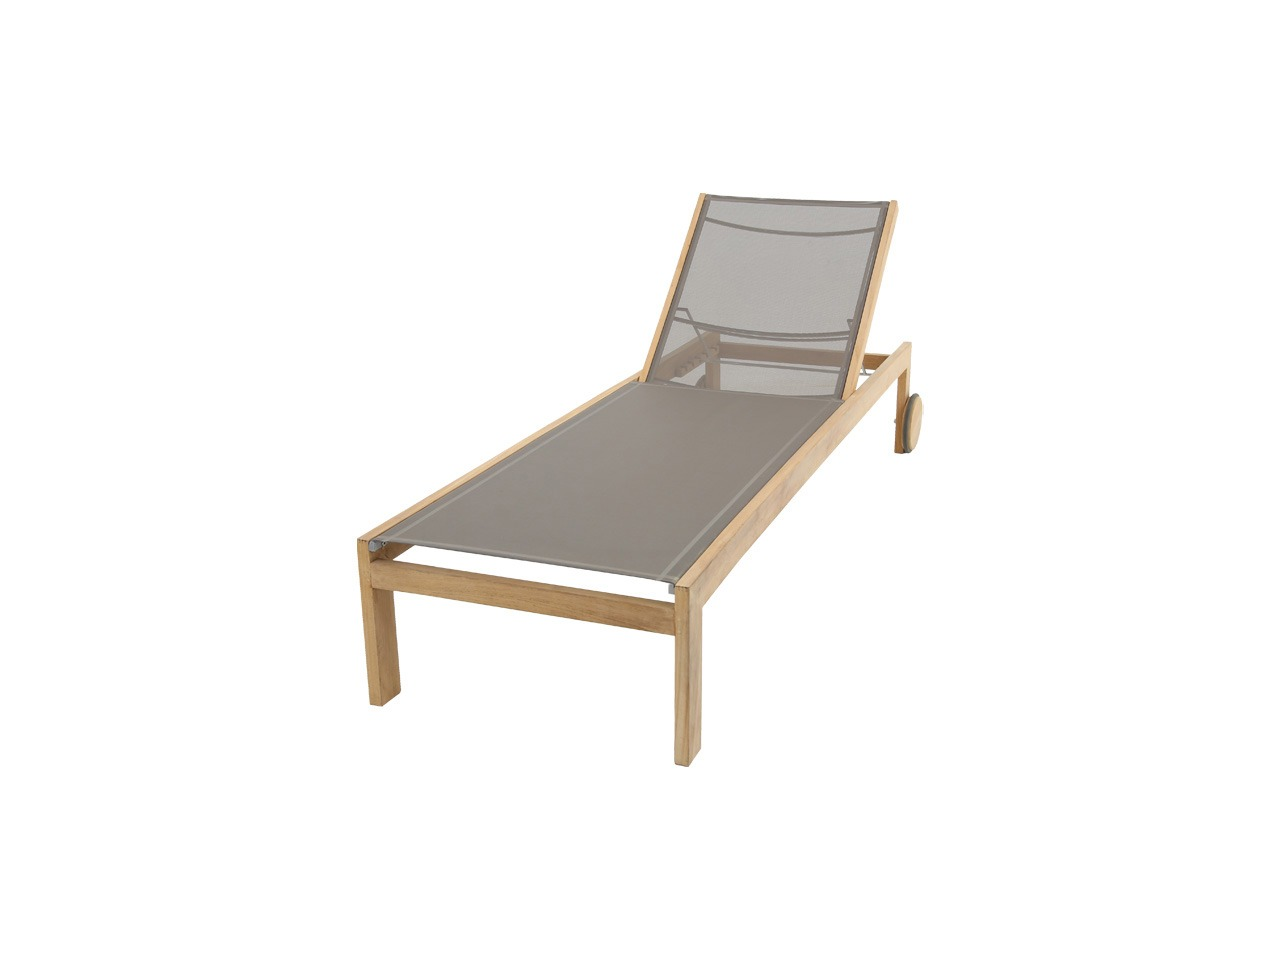 Deckchair Aanbieding Sonoma Ligbed Taupe